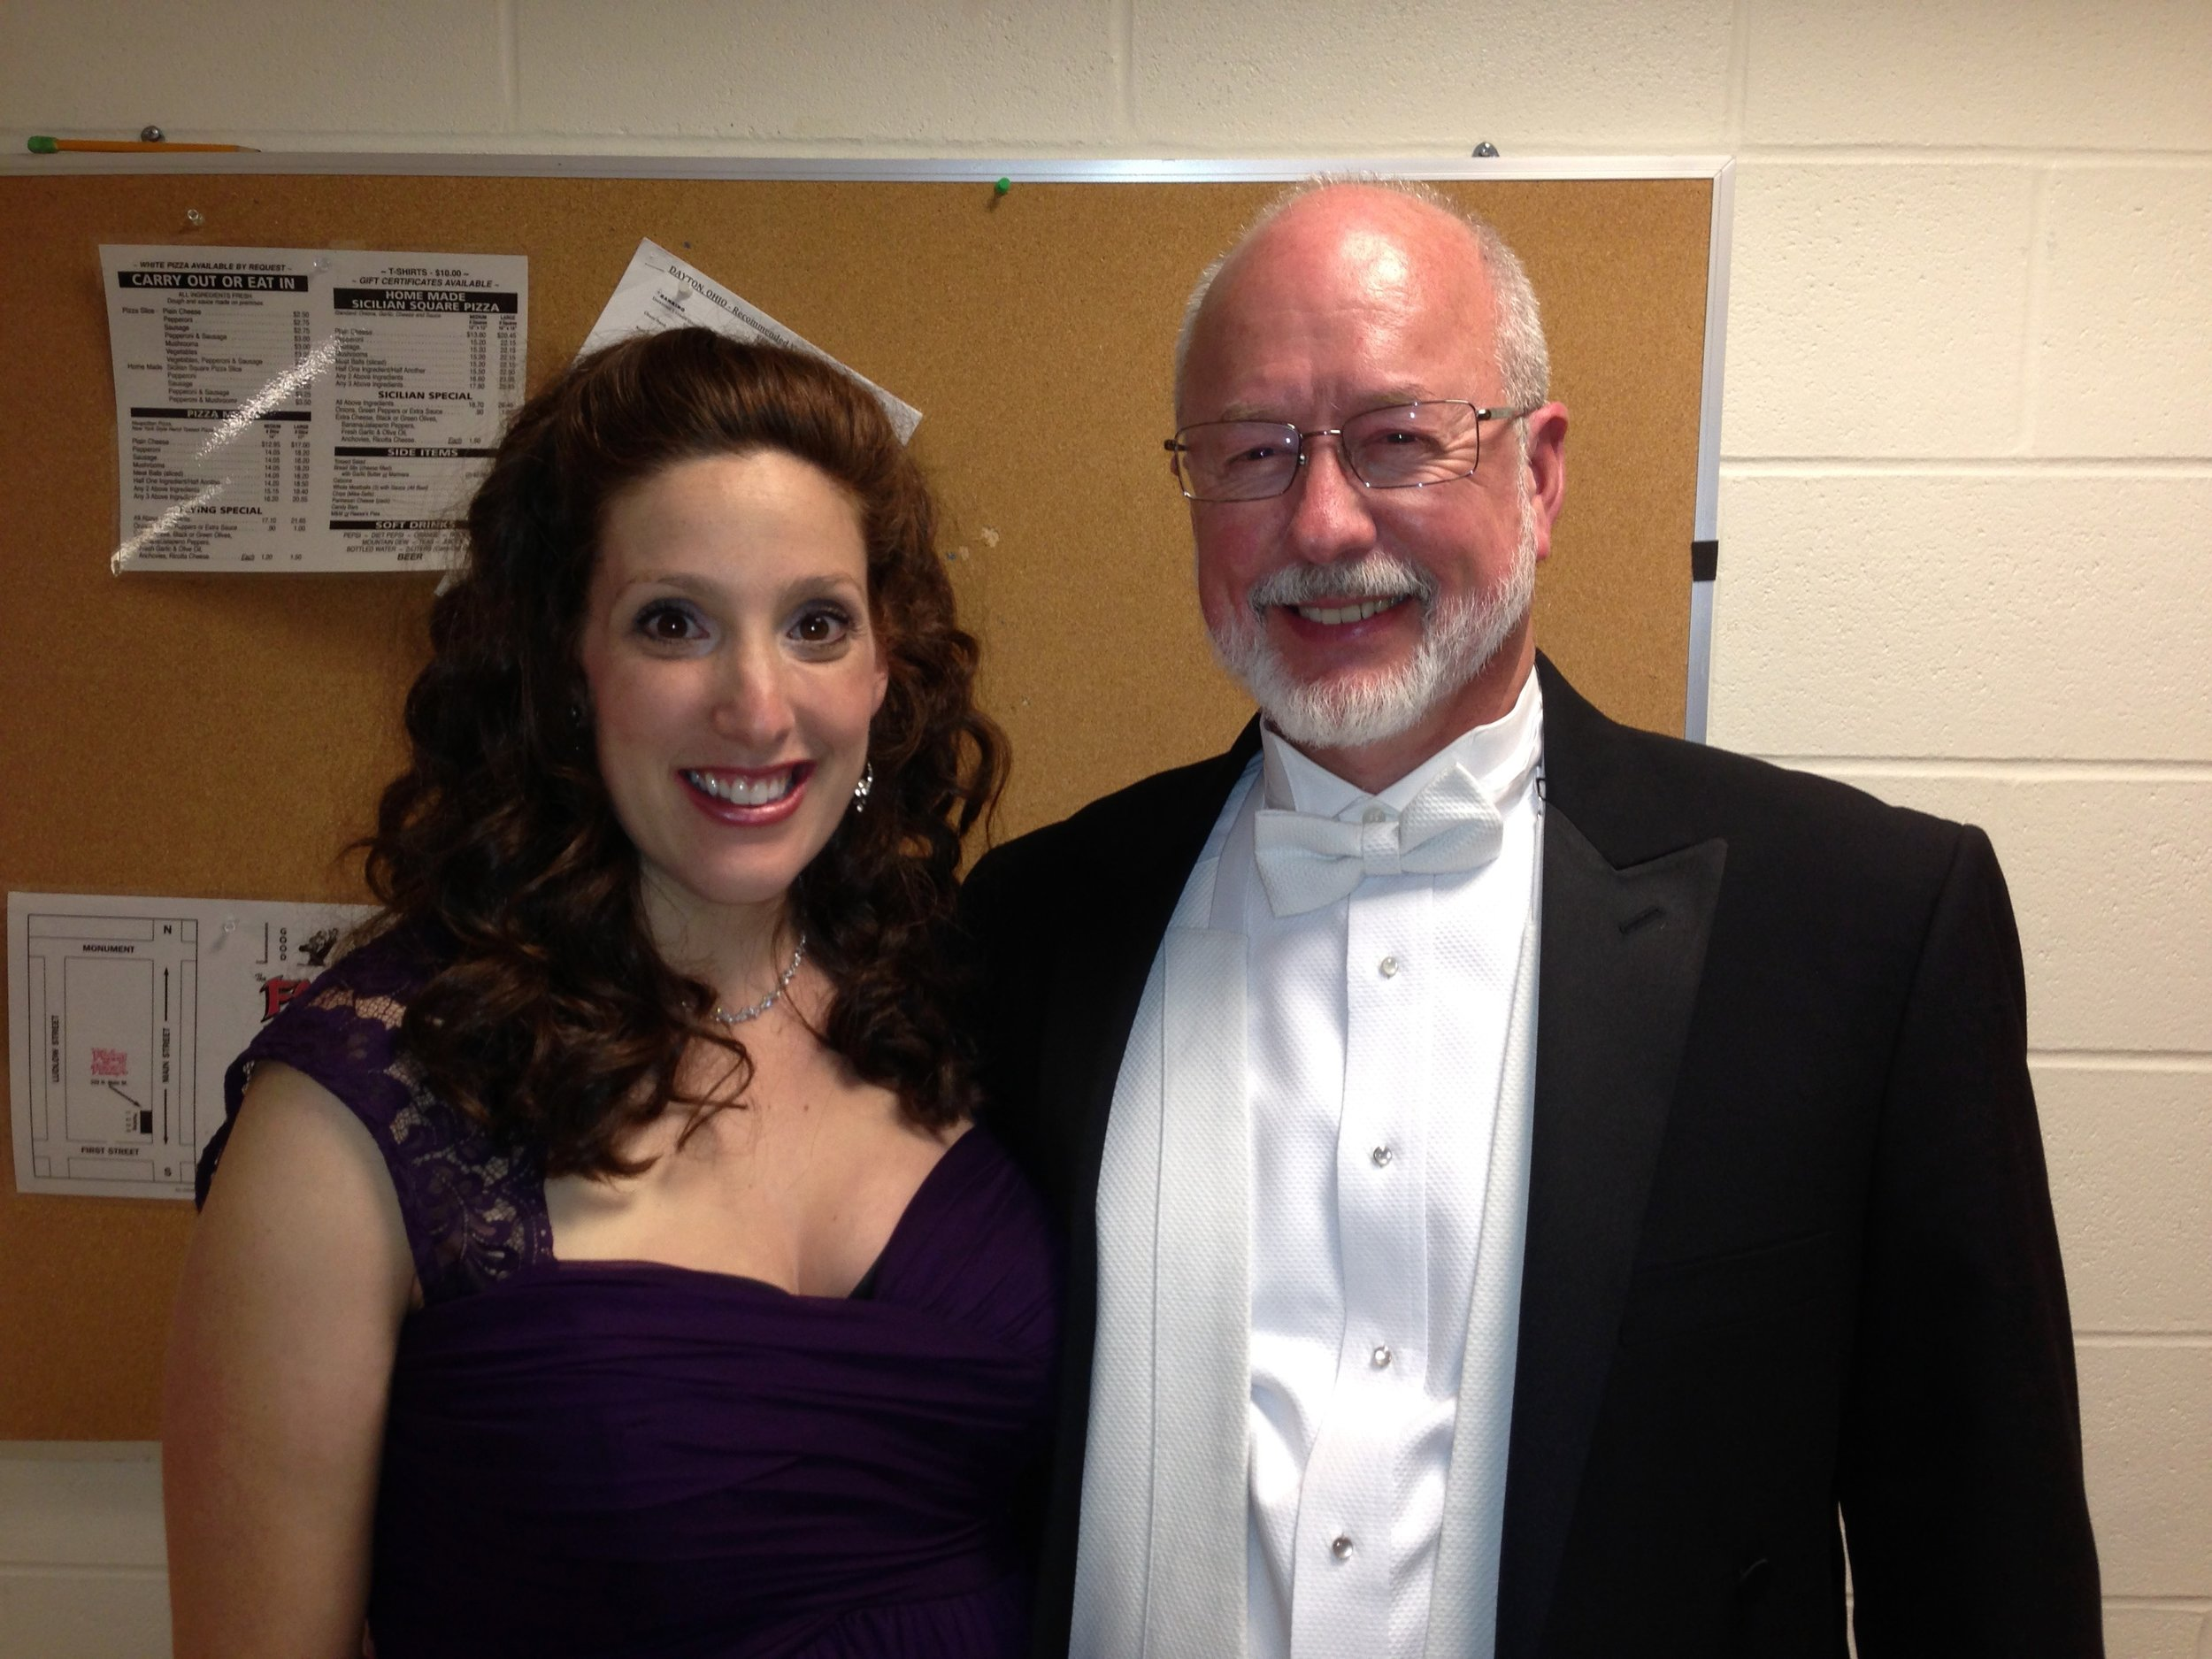 with former teacher and mentor William McGraw, soloists for Brahms Requiem with Dayton Philharmonic